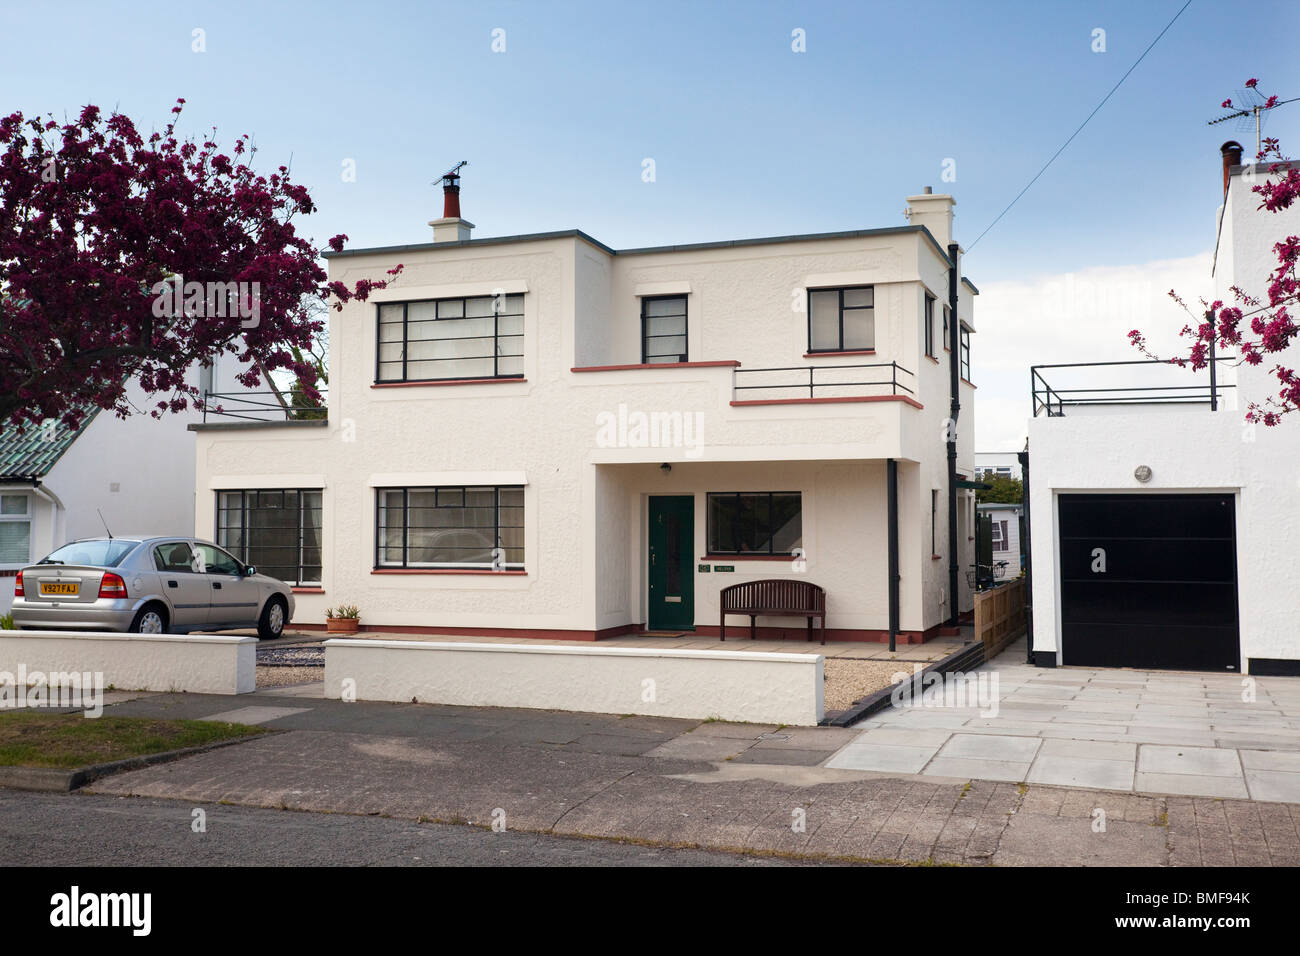 Art Deco Stile Art Deco Style House At Frinton On Sea Essex Uk Stock